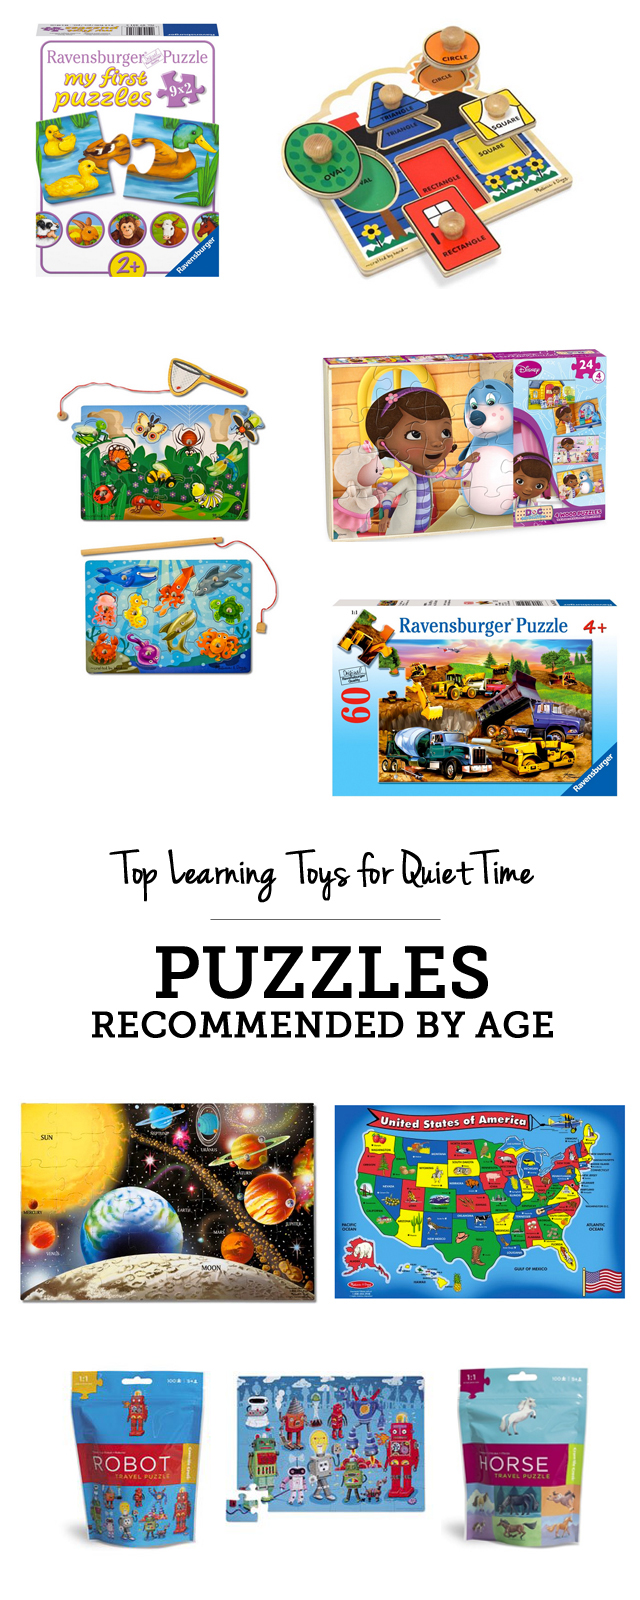 Top learning toys for quiet time: puzzles recommended by age - love this entire gift guide!